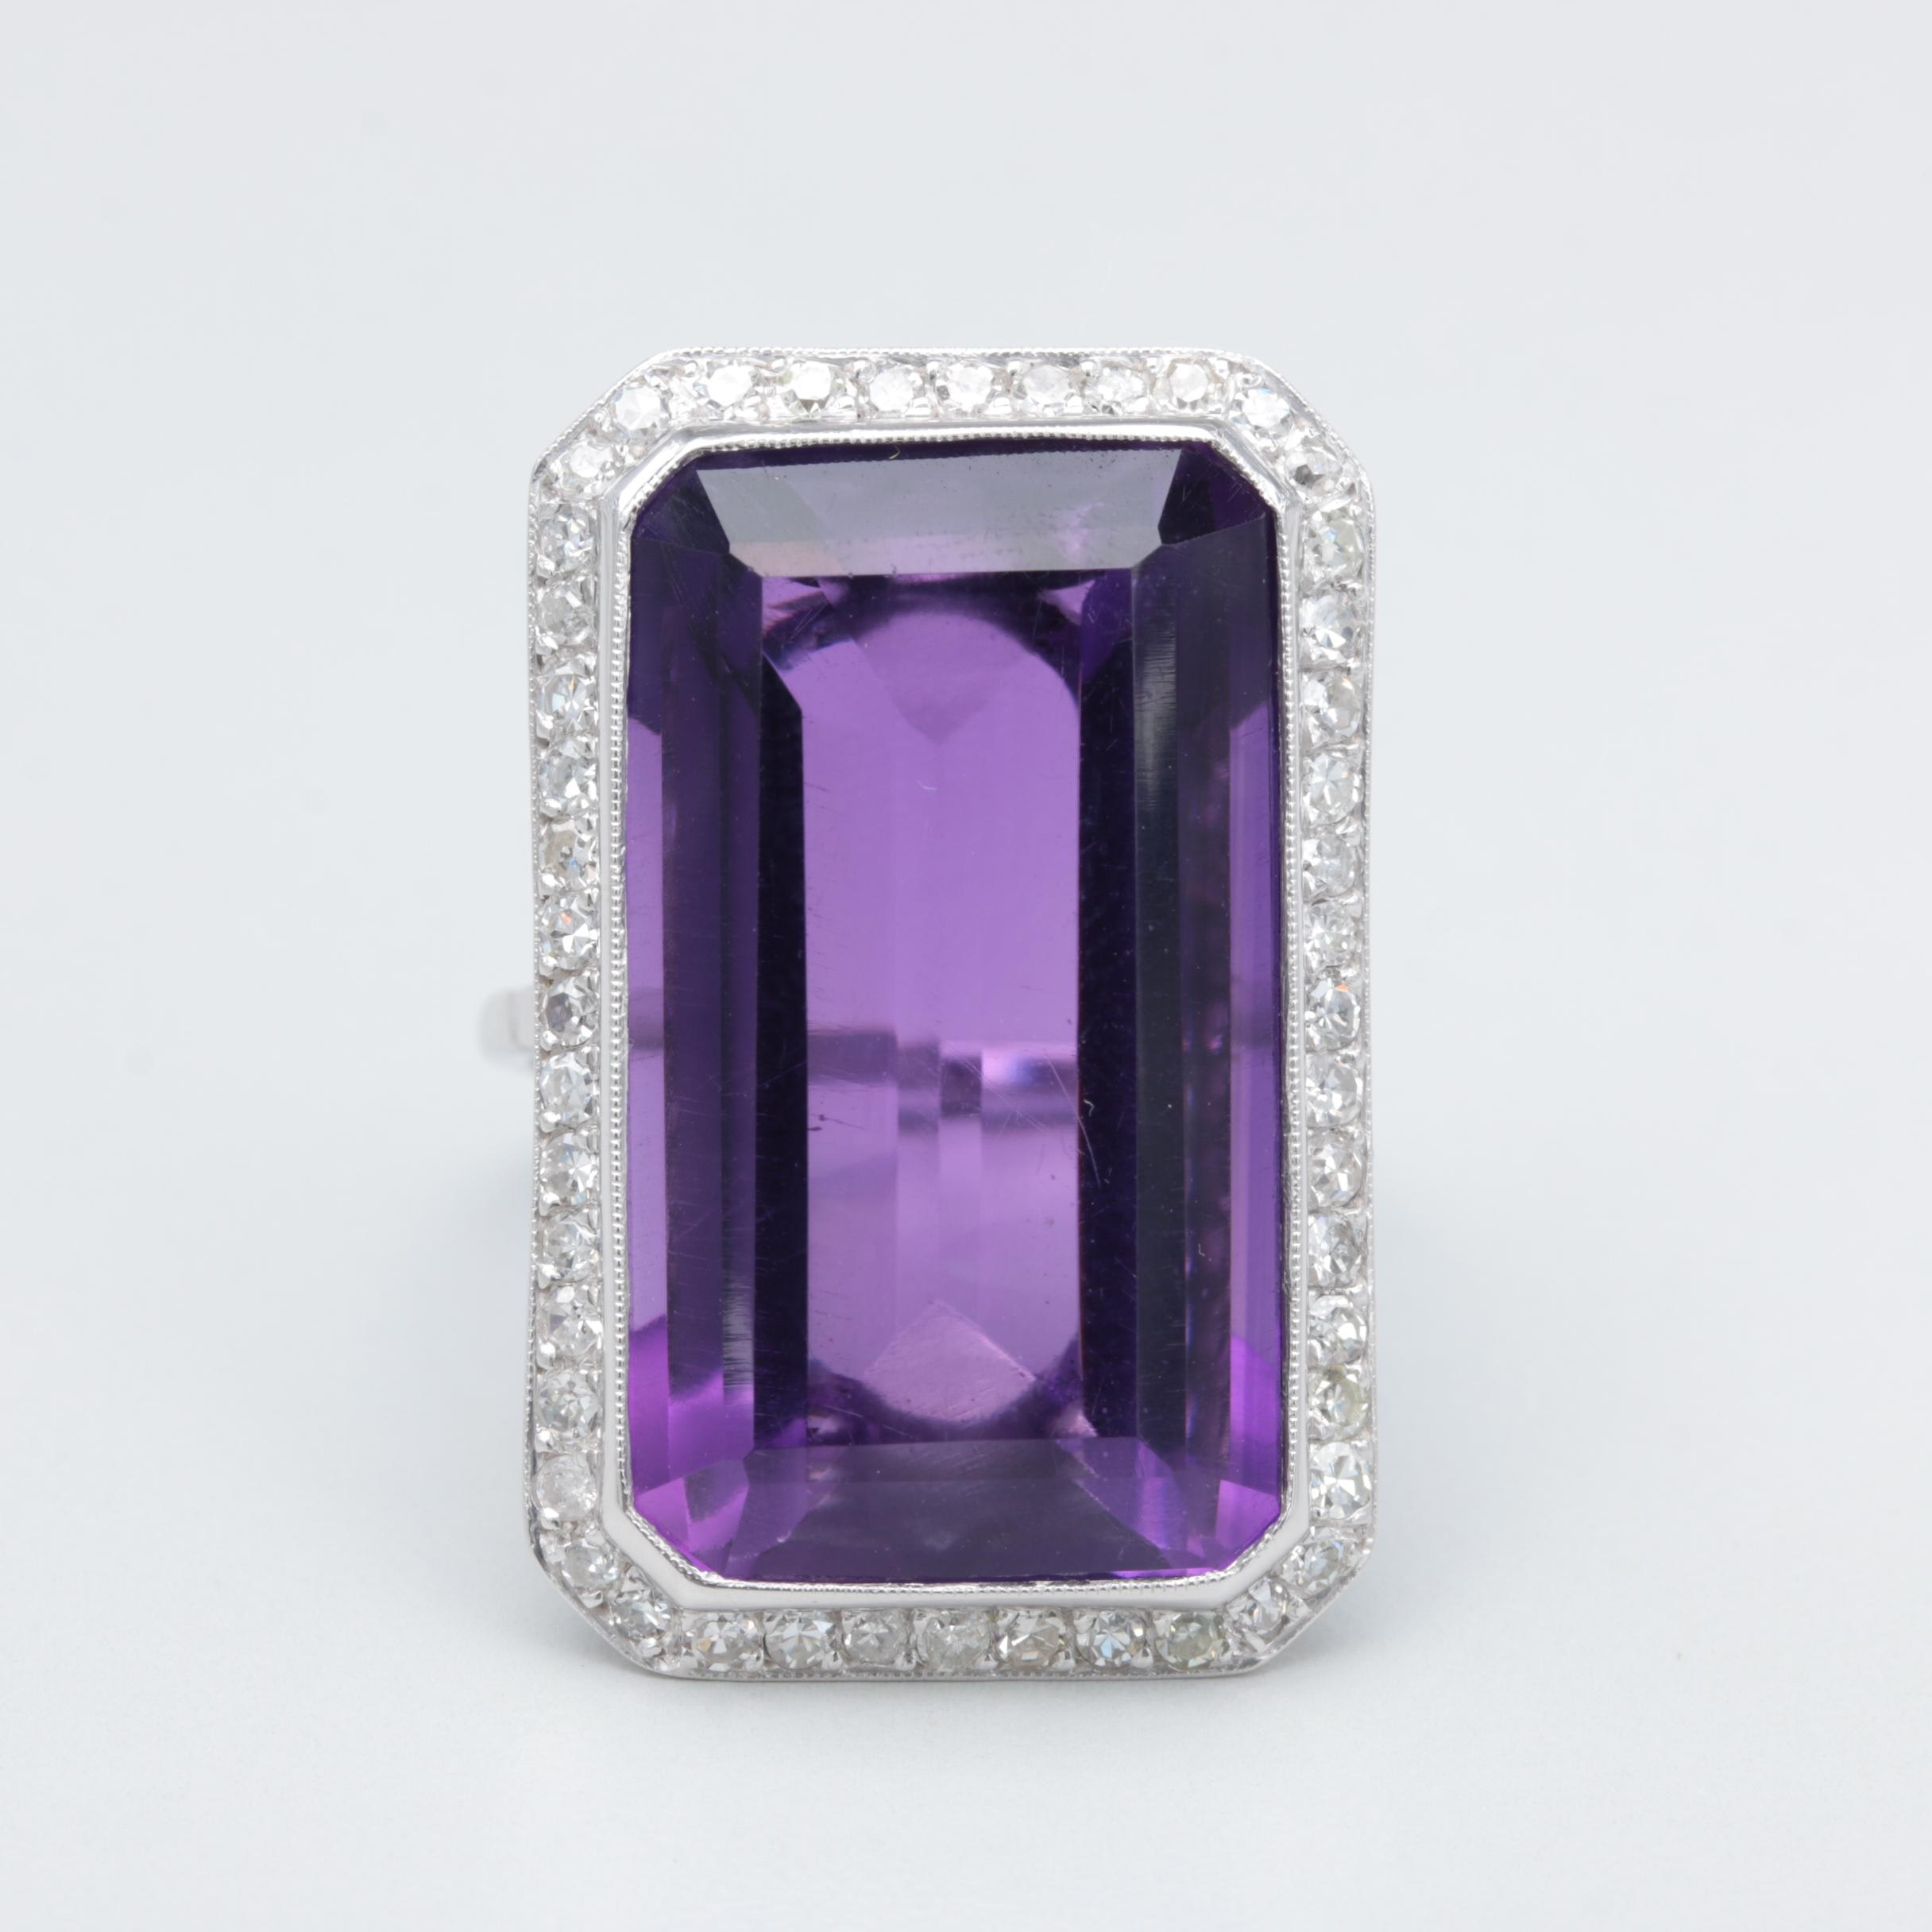 Platinum 9.17 CT Amethyst and Diamond Ring